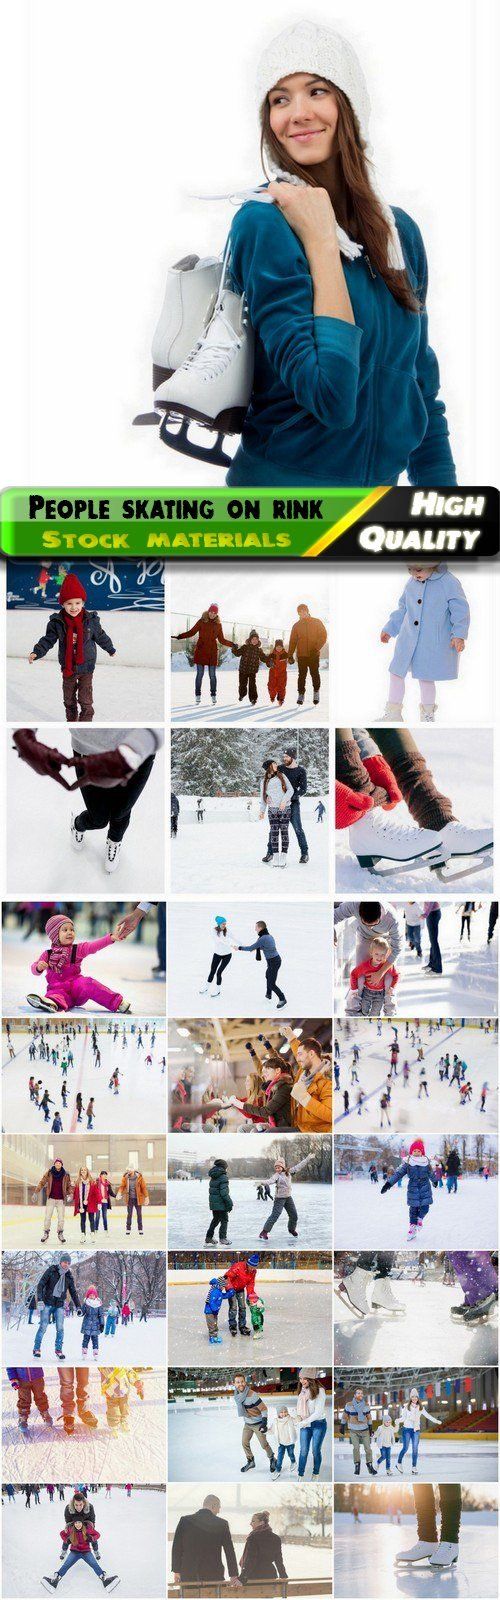 Sport people relax skating at the rink in skates - 25 HQ Jpg